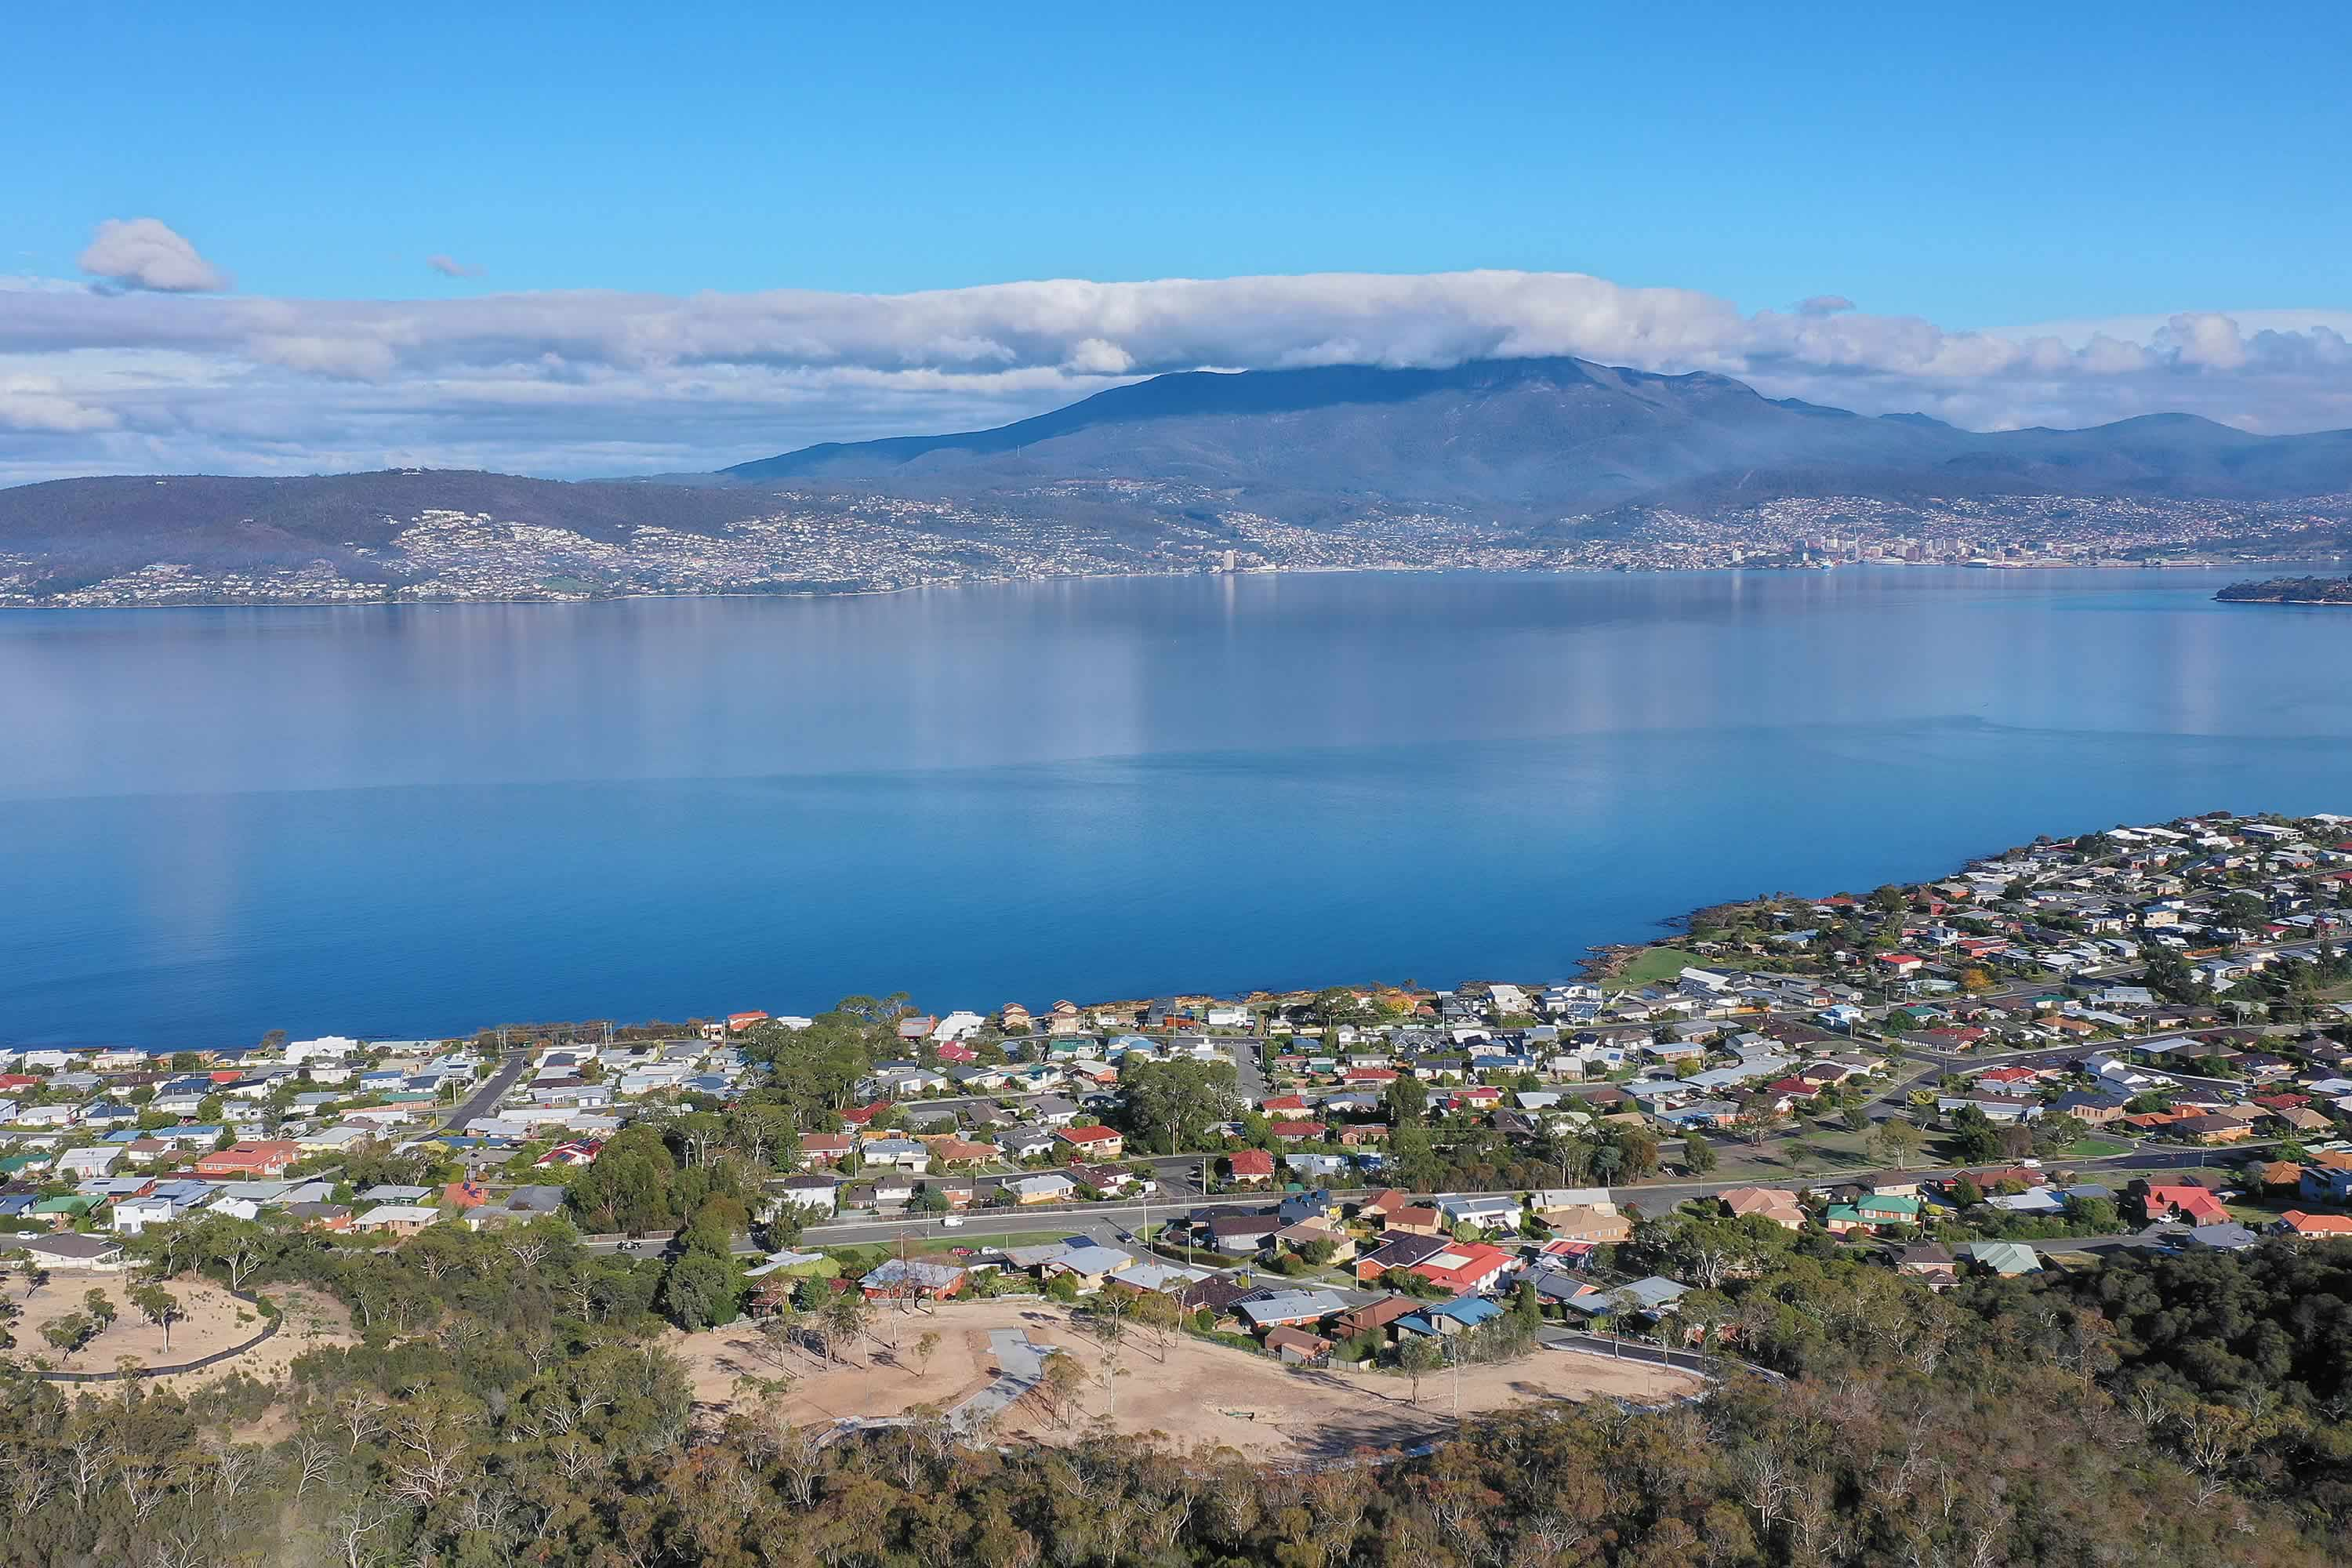 View from Tunah Street looking west towards the Hobart city centre, Sandy Bay, and kunanyi / Mount Wellington. Photo: Owen Fielding.